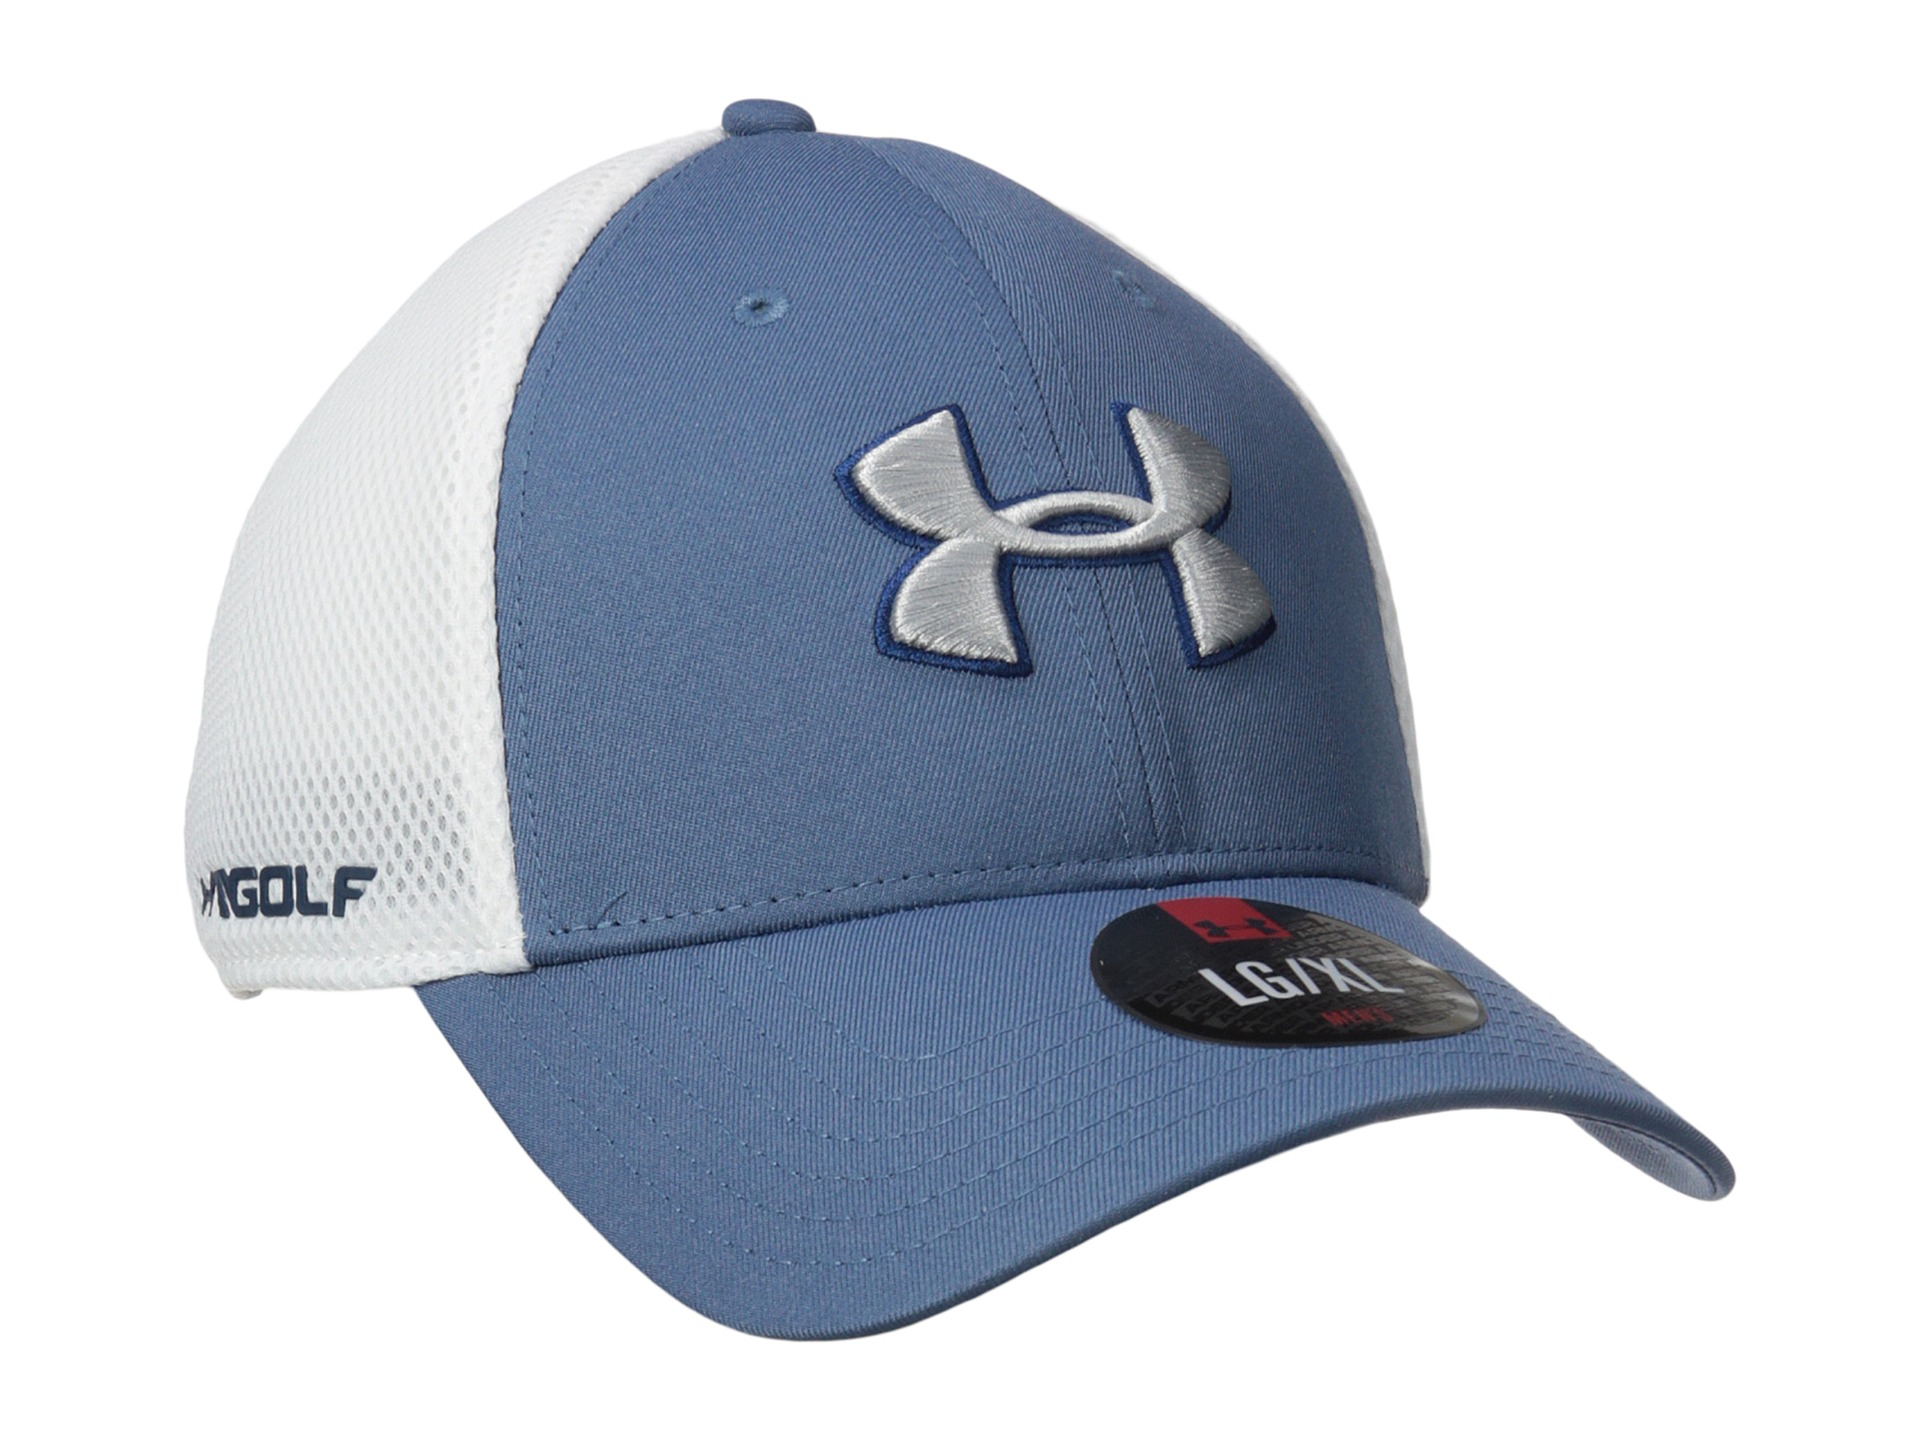 Lyst - Under Armour Ua Golf Mesh Stretch 2.0 Cap in White for Men 172fb0c6cd3